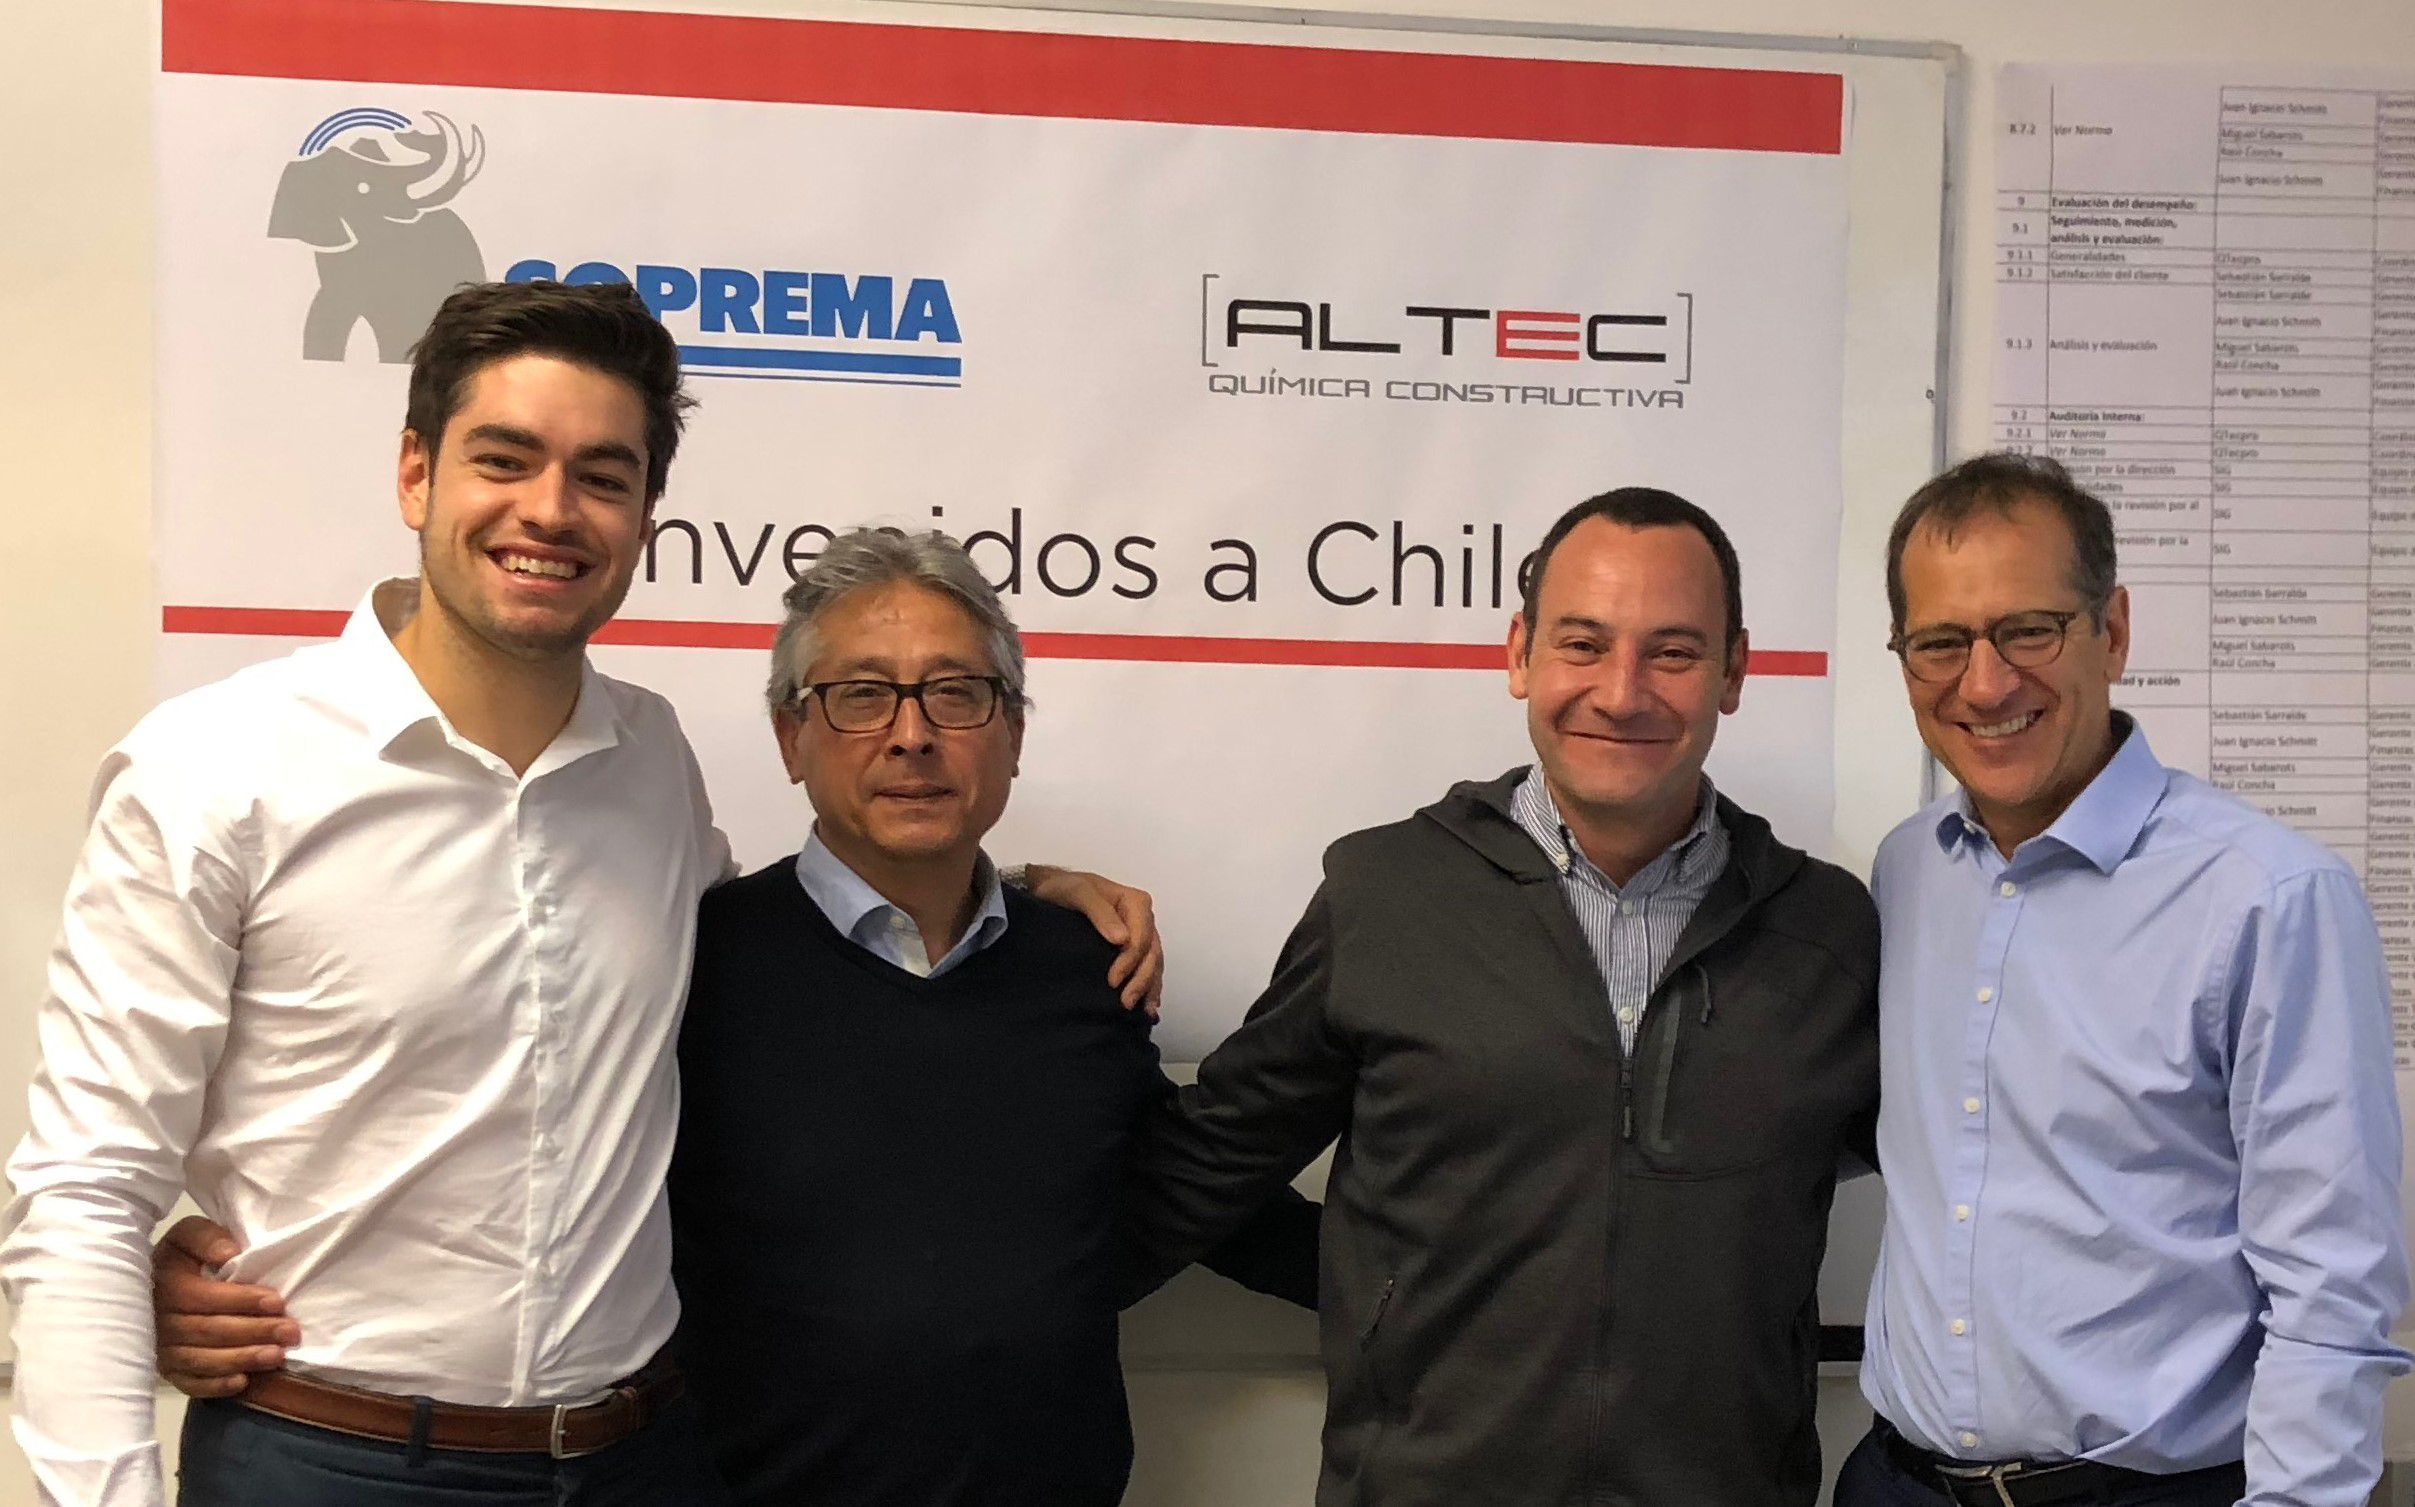 SOPREMA CONTINUES ITS INTERNATIONAL EXPANSION WITH A NEW STRATEGIC PARTNERSHIP IN CHILE